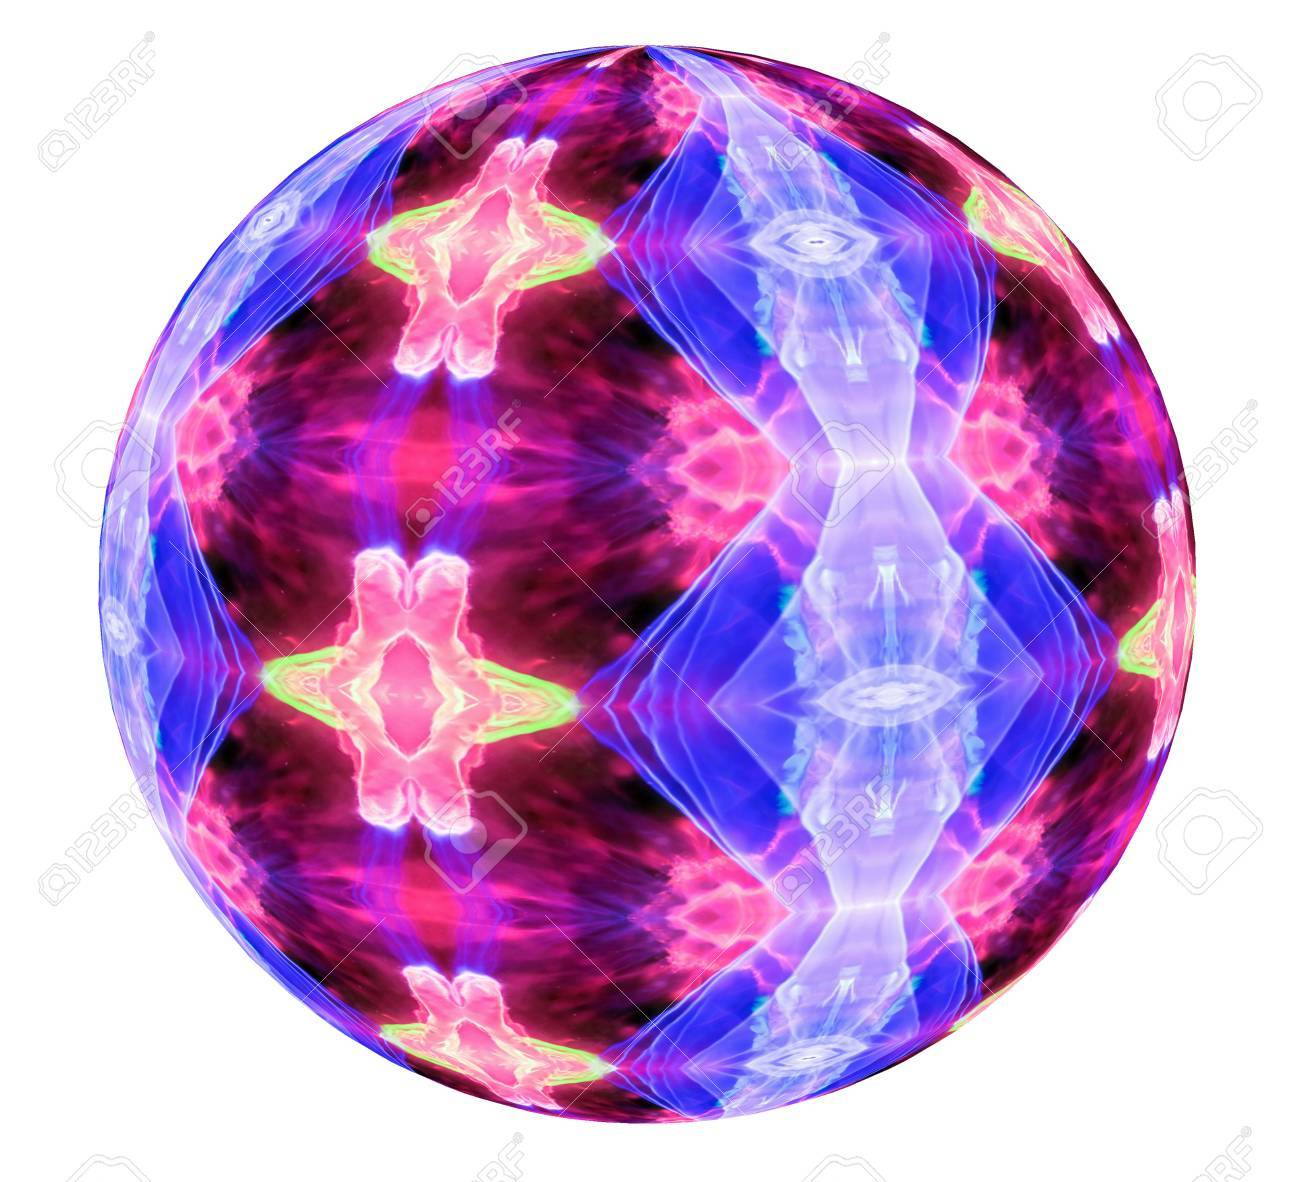 An Abstract View Of A Plasma Ball From Tesla Lamp Toy Image Stock Photo    62548384